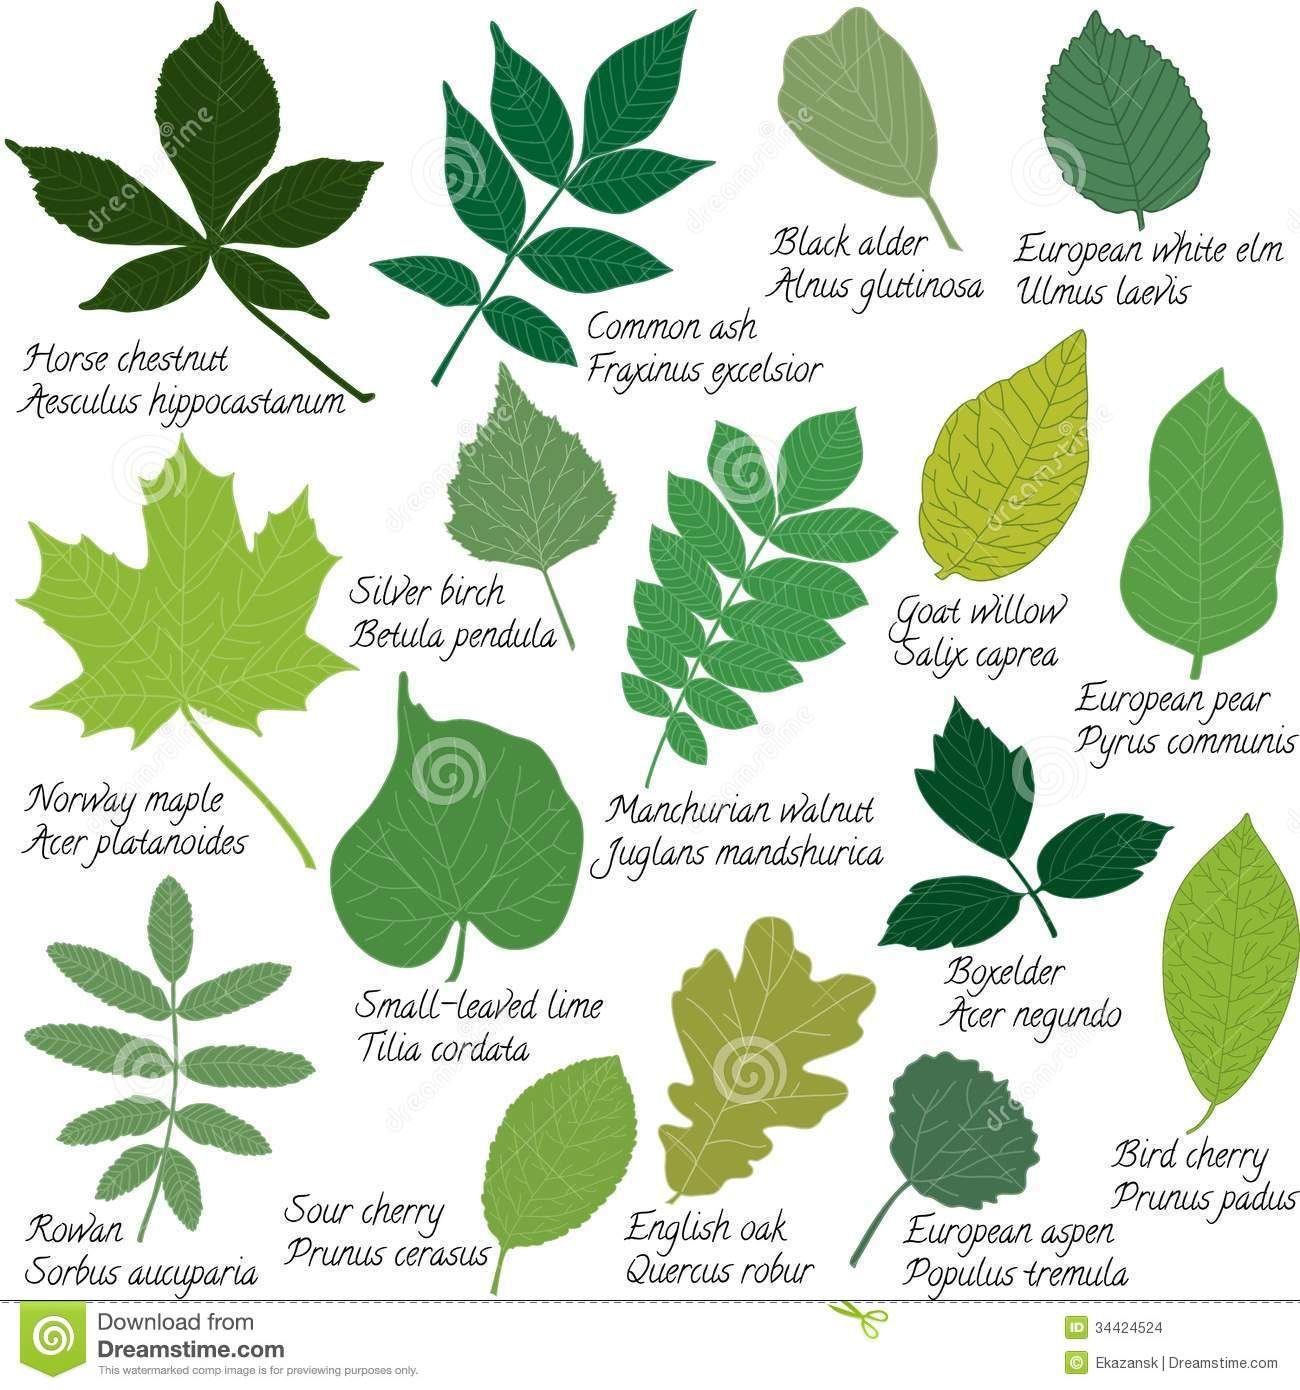 Pin By Sally Reynolds On Picture Of Tree Leaf Tree Leaf Identification Tree Identification Leaf Identification